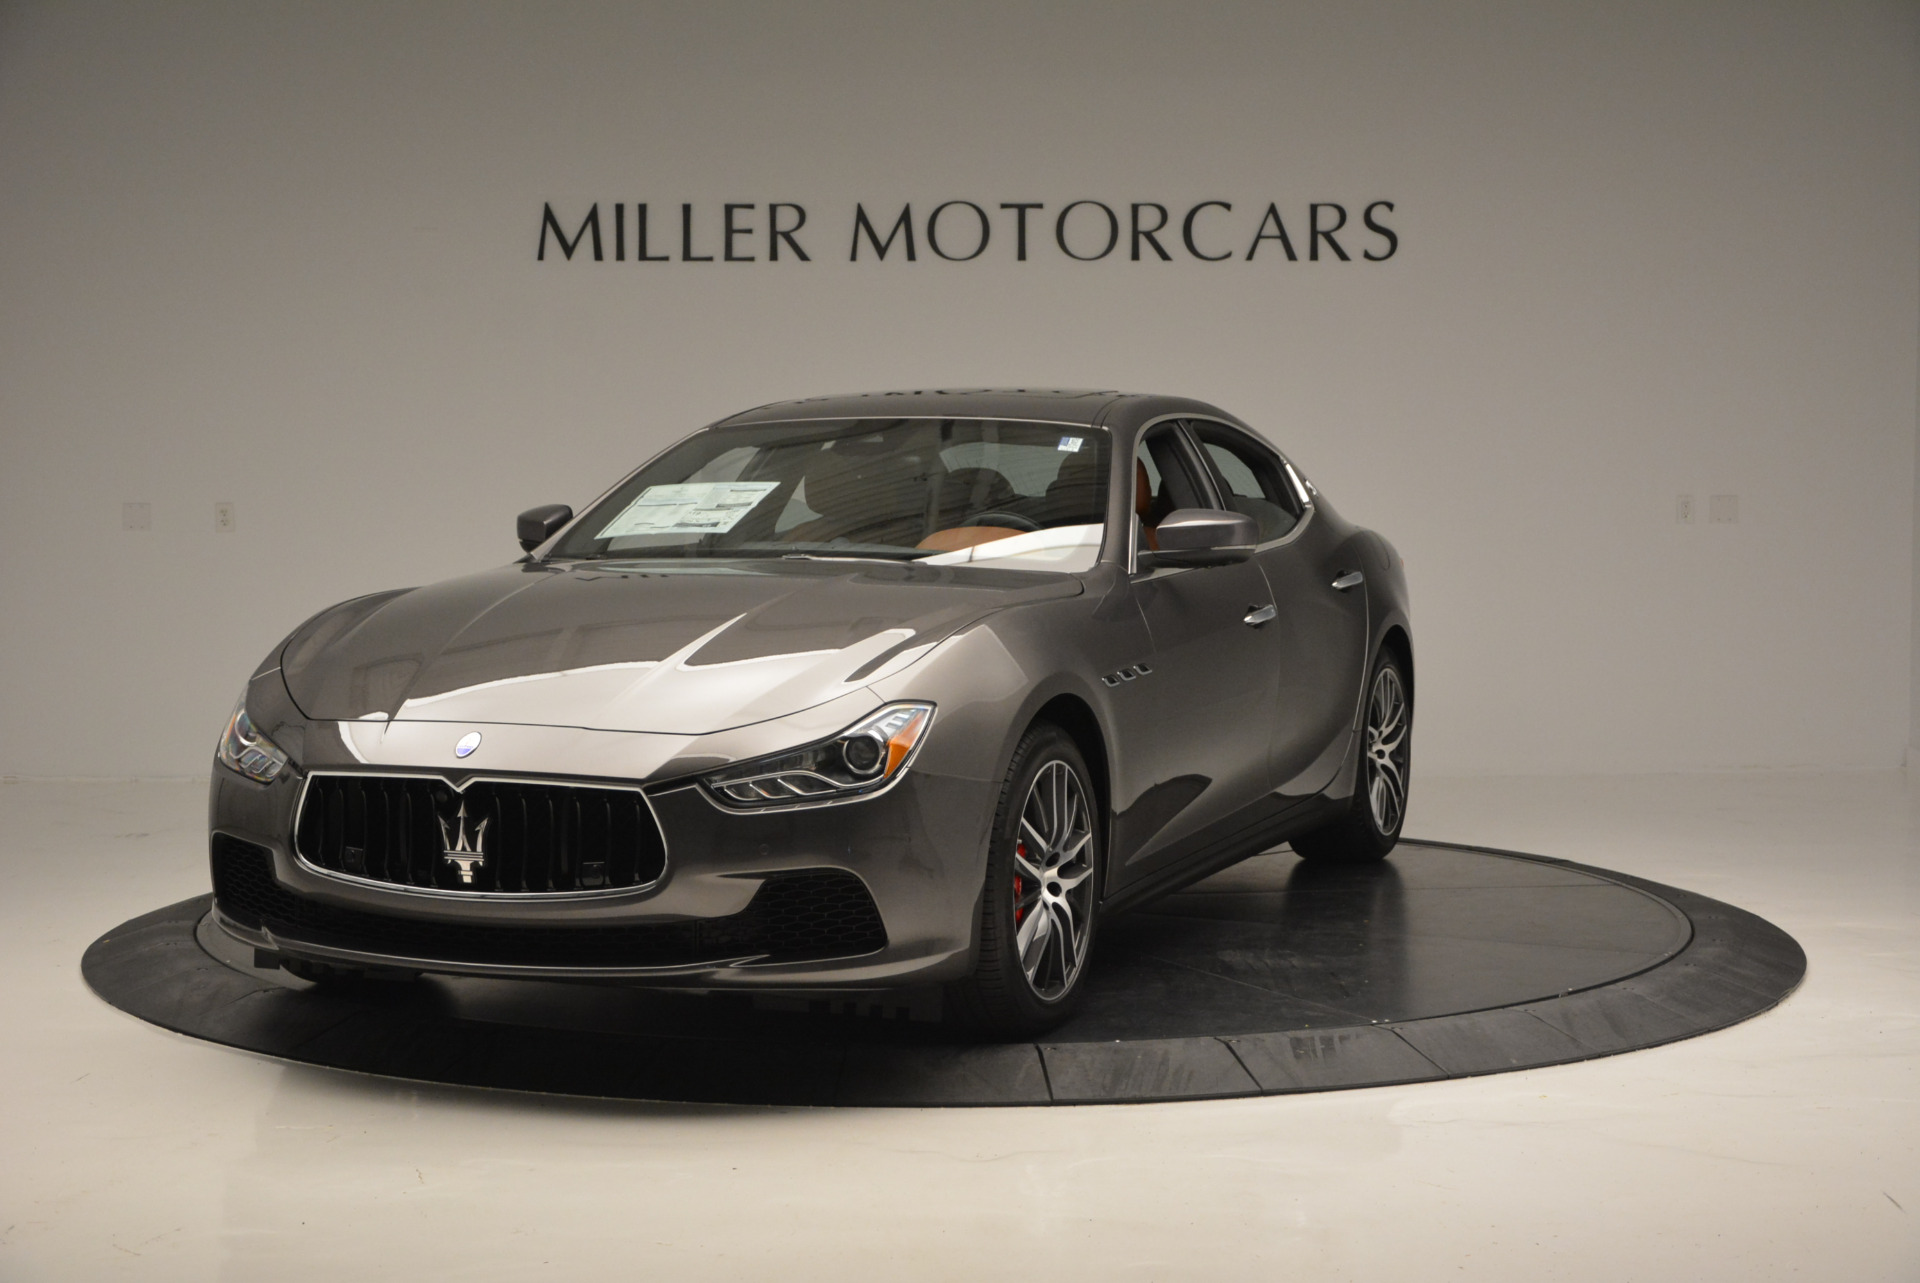 New 2017 Maserati Ghibli S Q4 For Sale In Greenwich, CT 574_main